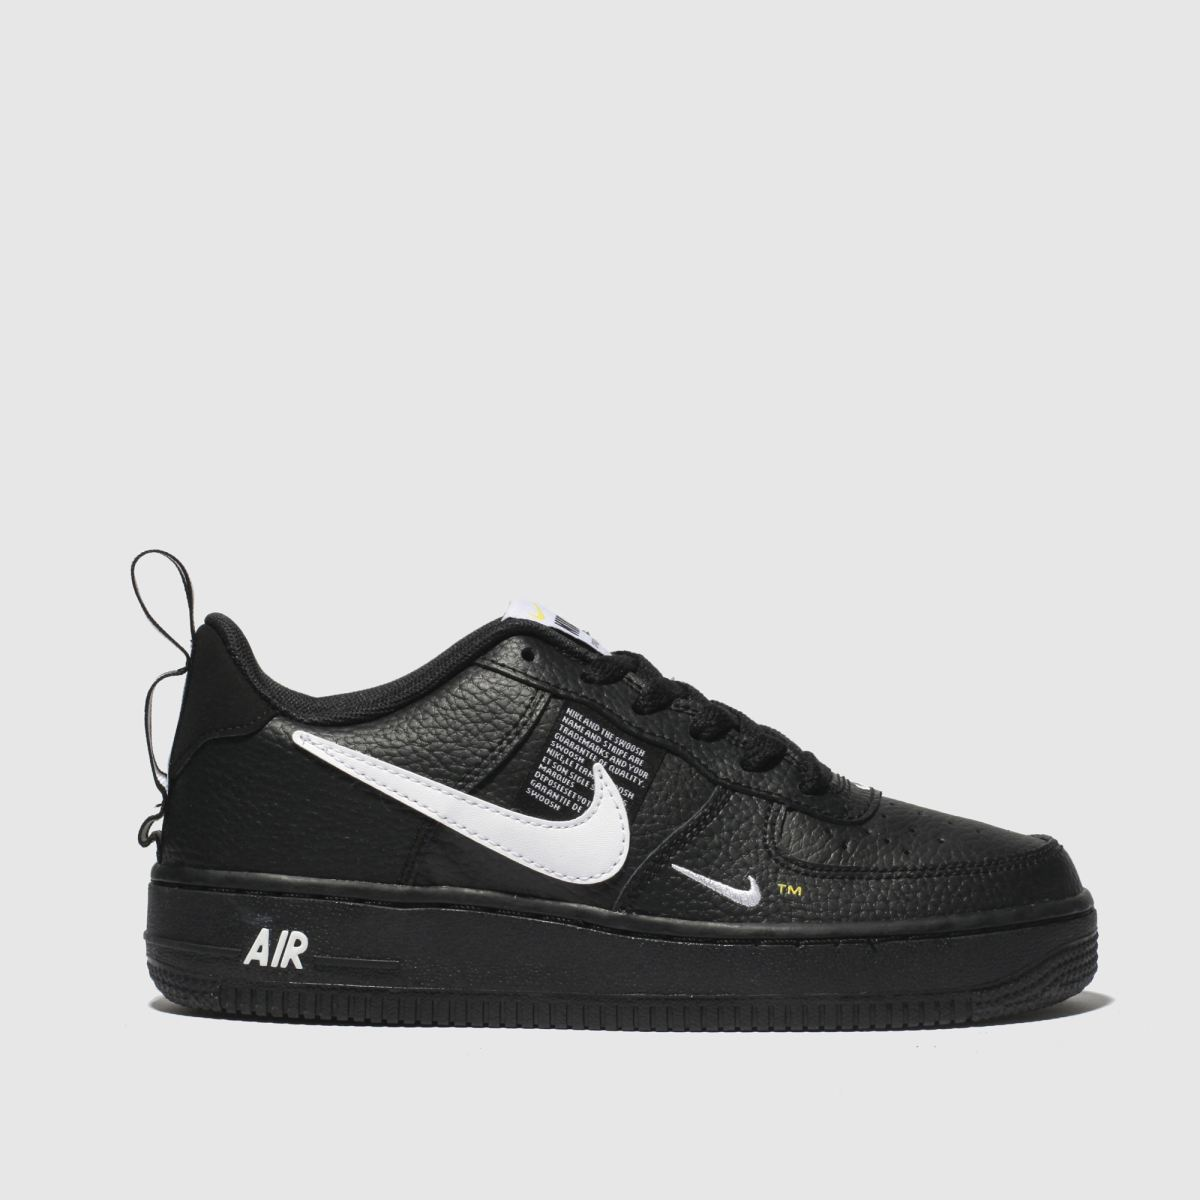 Nike Black & White Air Force 1 Lv8 Utility Trainers Youth